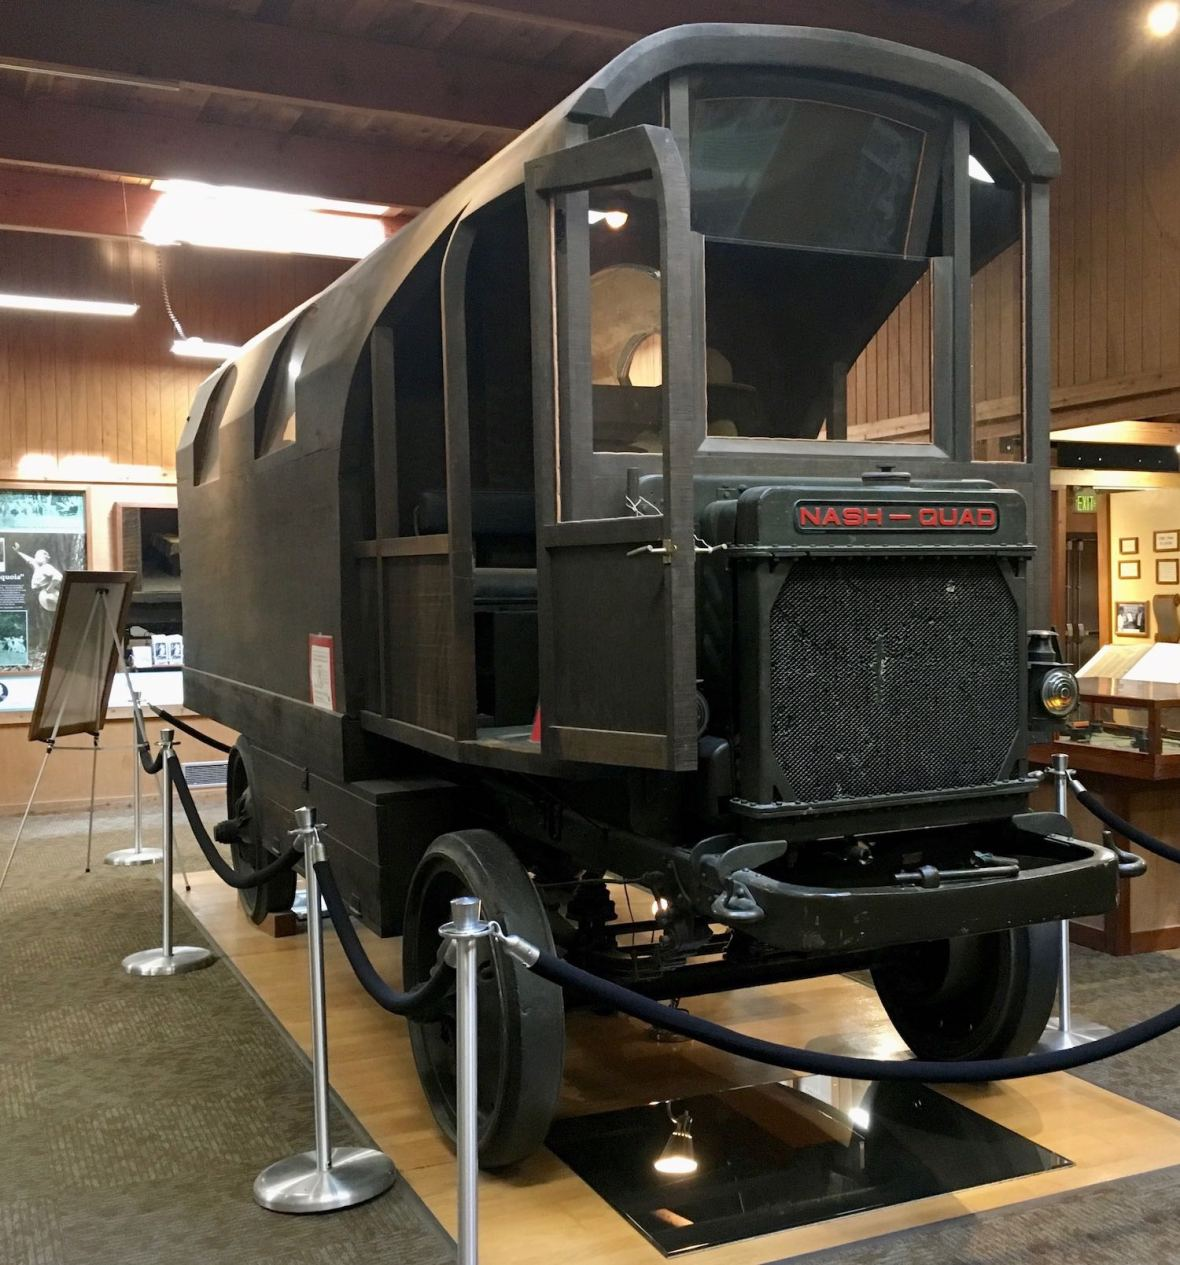 Charles Kellogg's travel log redwood tree truck in Humboldt Redwoods State Park visitor center